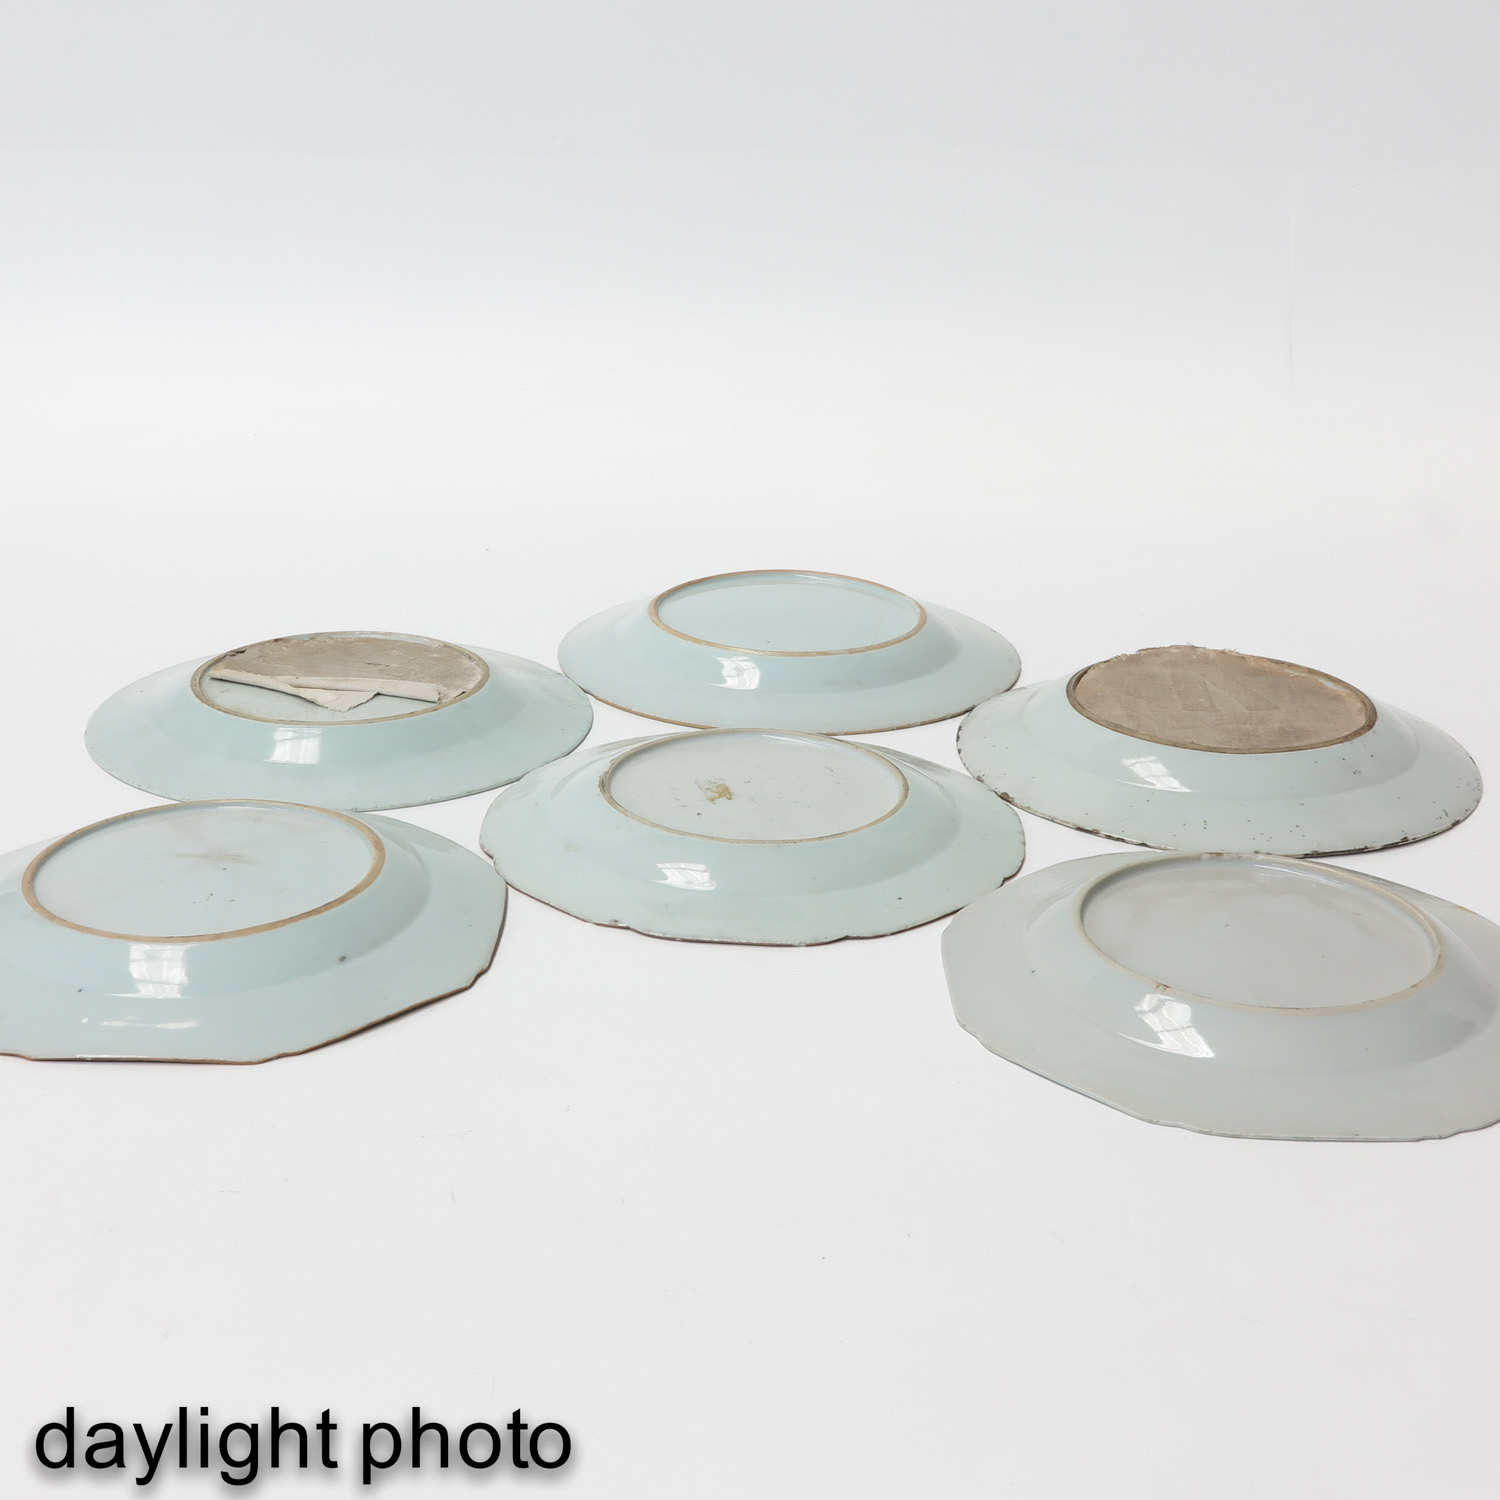 A Collection of 6 Plates - Image 10 of 10